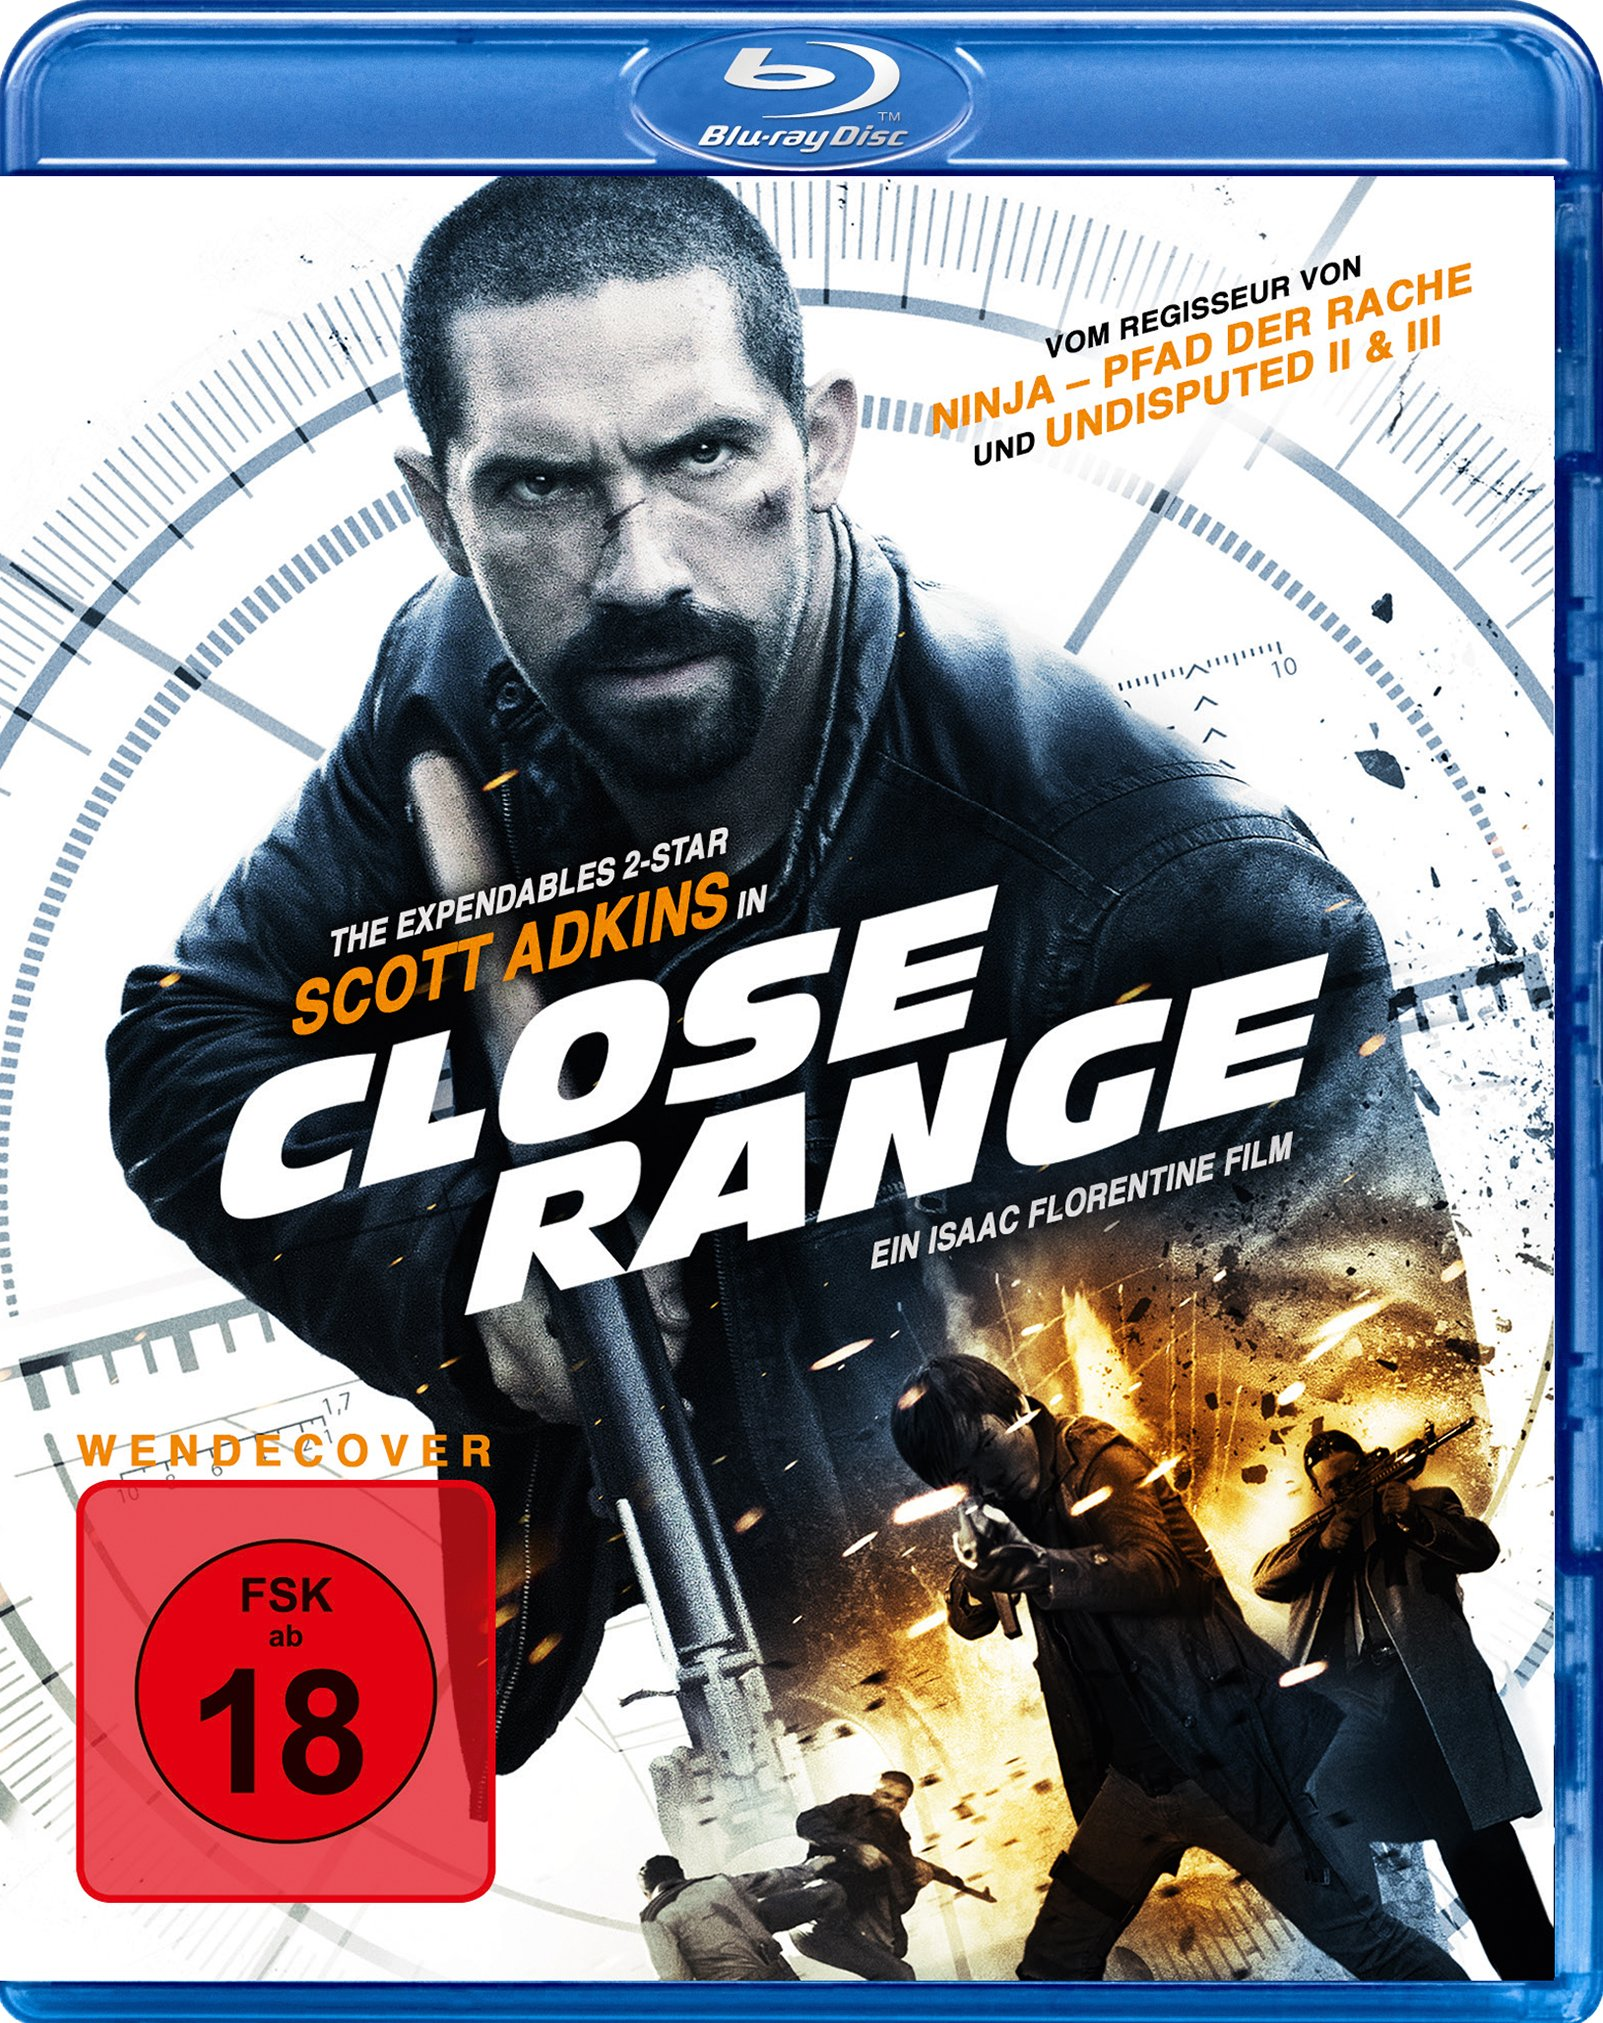 download Close.Range.2015.German.DL.1080p.BluRay.x264-LeetHD